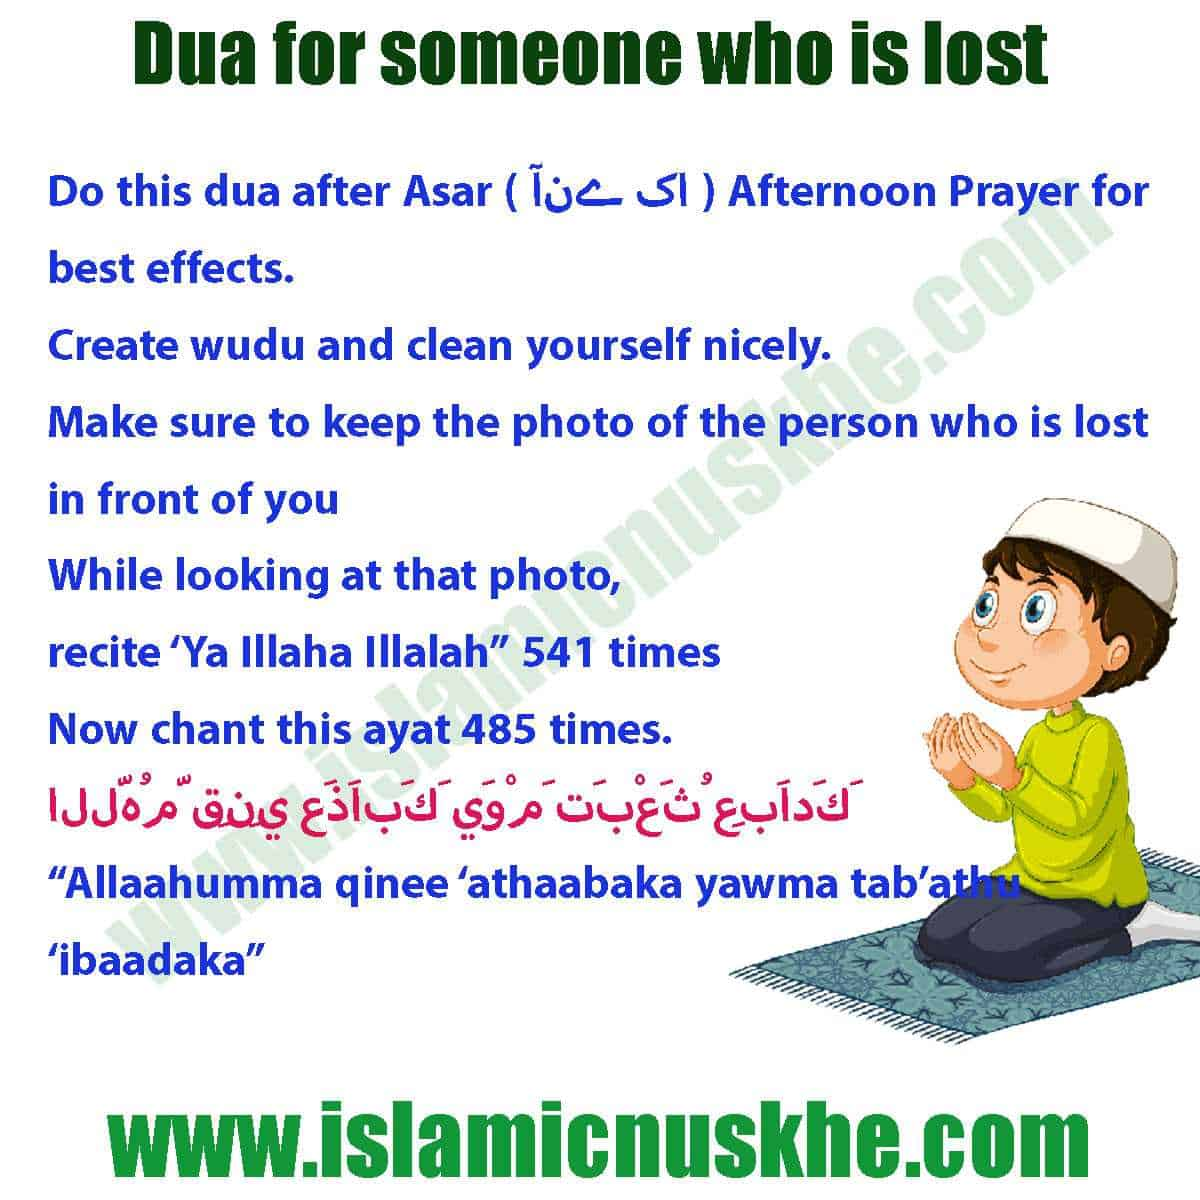 Here is Dua for someone who is lost Step by Step